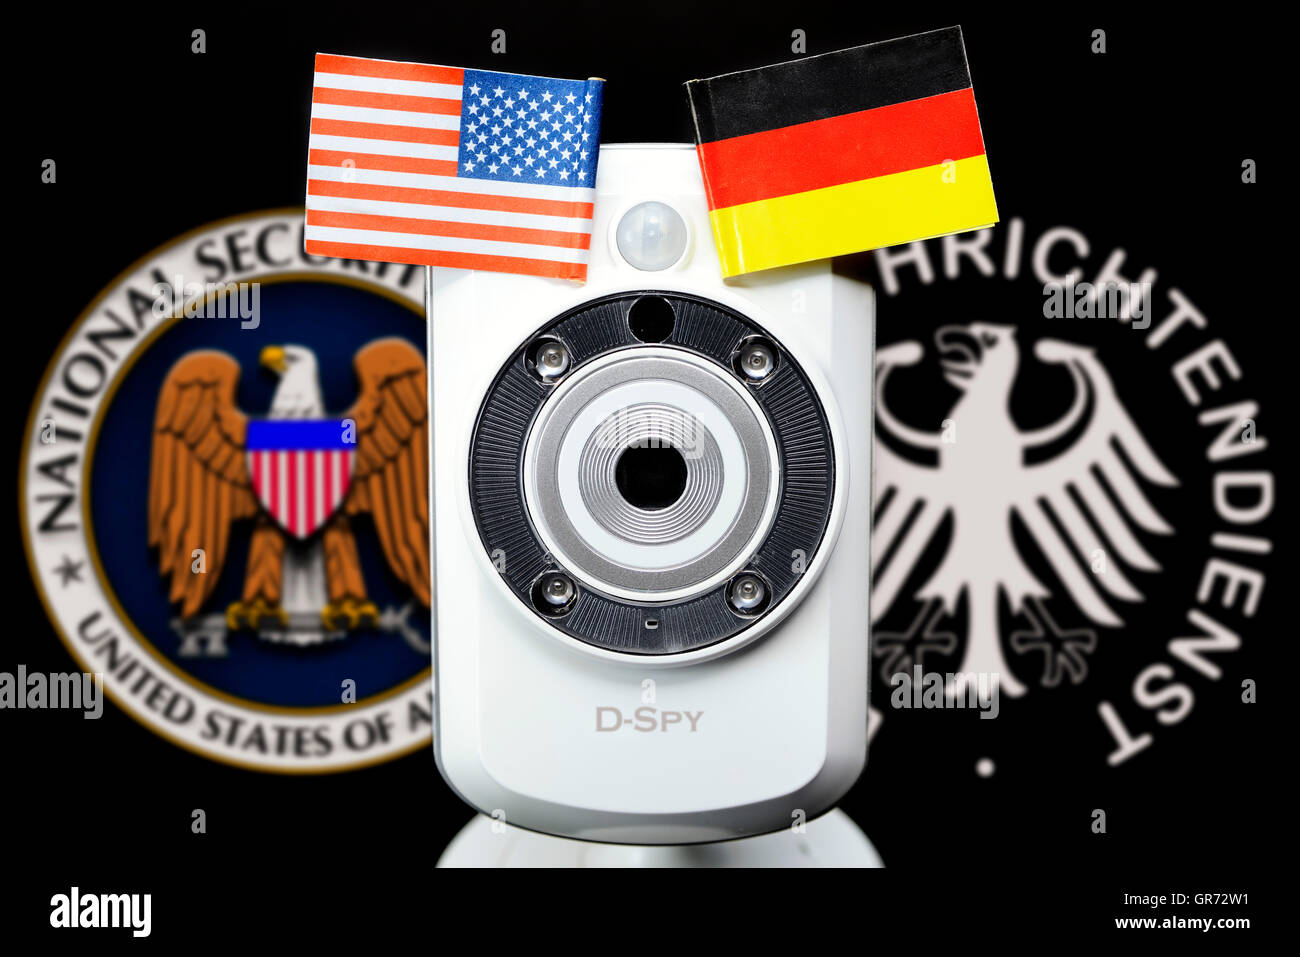 Webcam And Emblems Of Nsa And German Bnd, Espionage Scandal - Stock Image